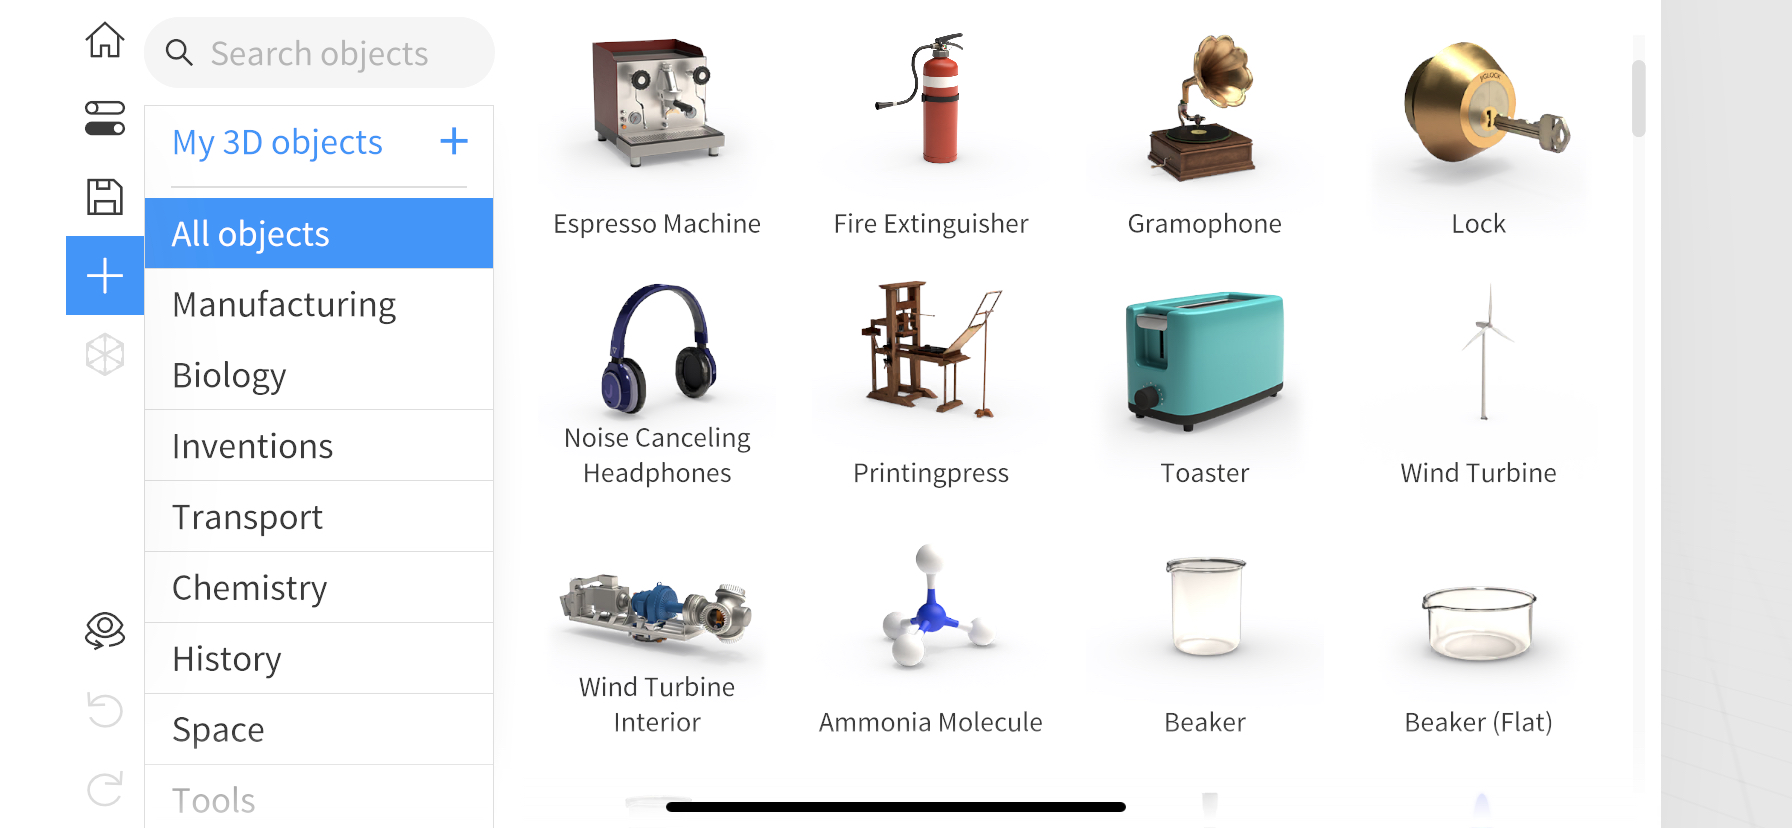 Select objects from Jig Library in the app